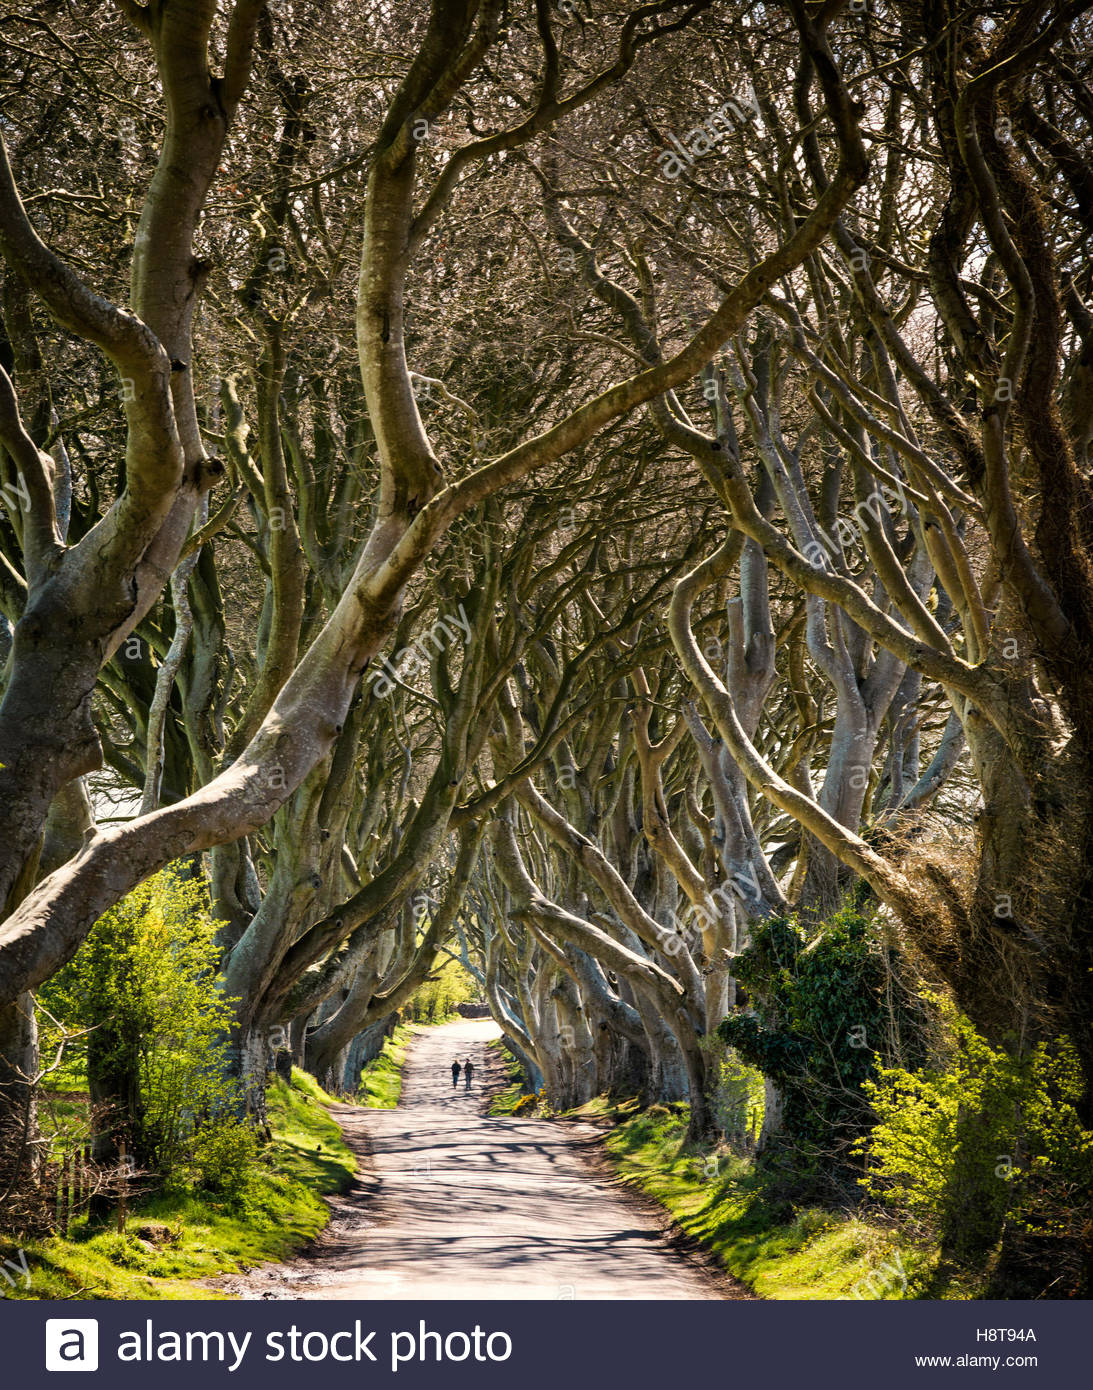 Game of Thrones Location of the Dark Hedges in Northern Ireland. - Stock Image